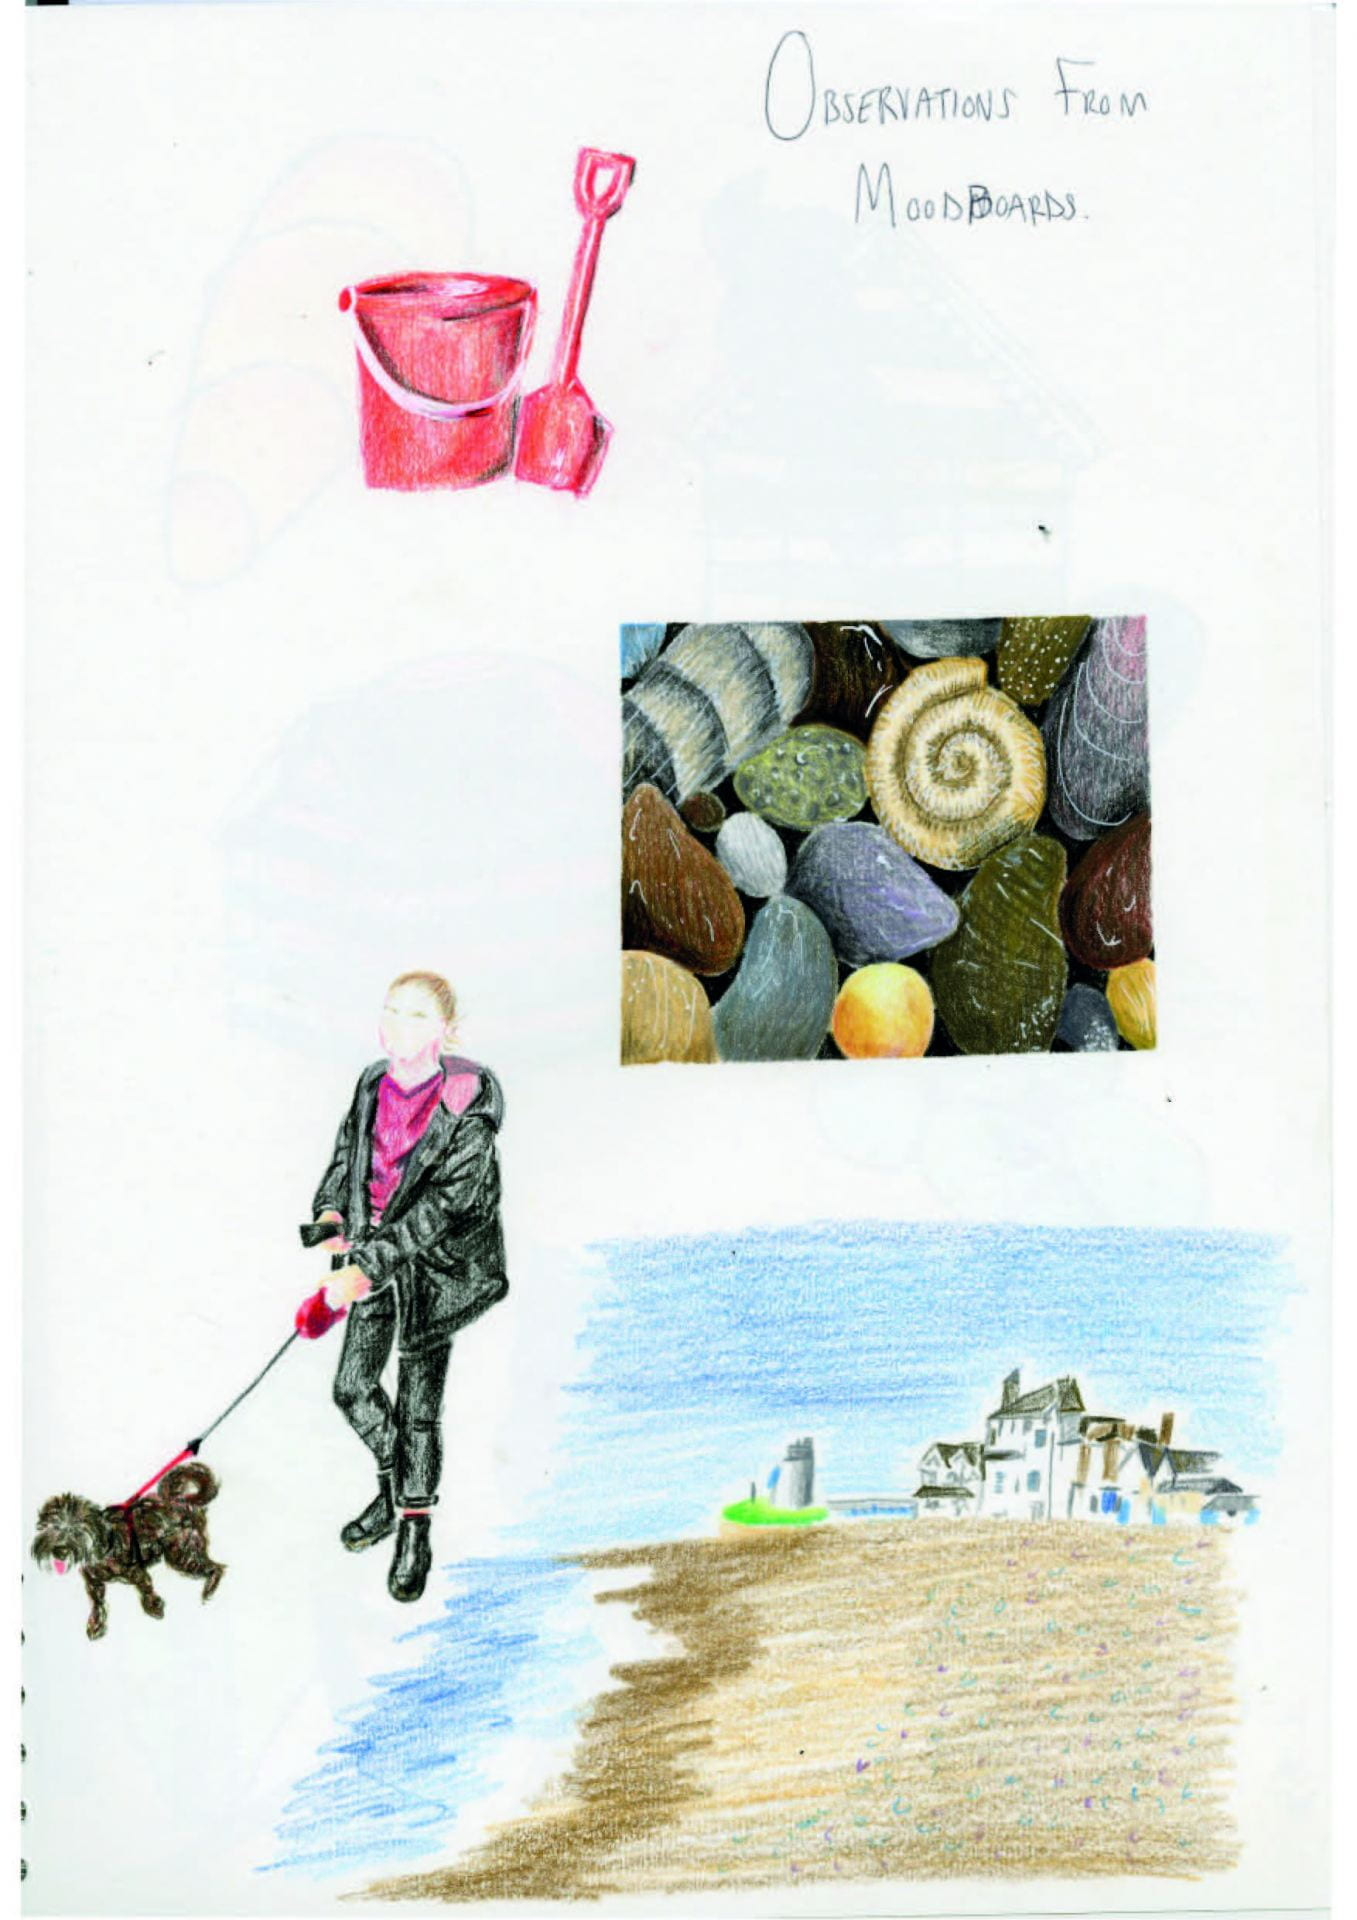 Sketch of a post depicting a red bucket and spade, sea shells and someone walking their dog on the beach.